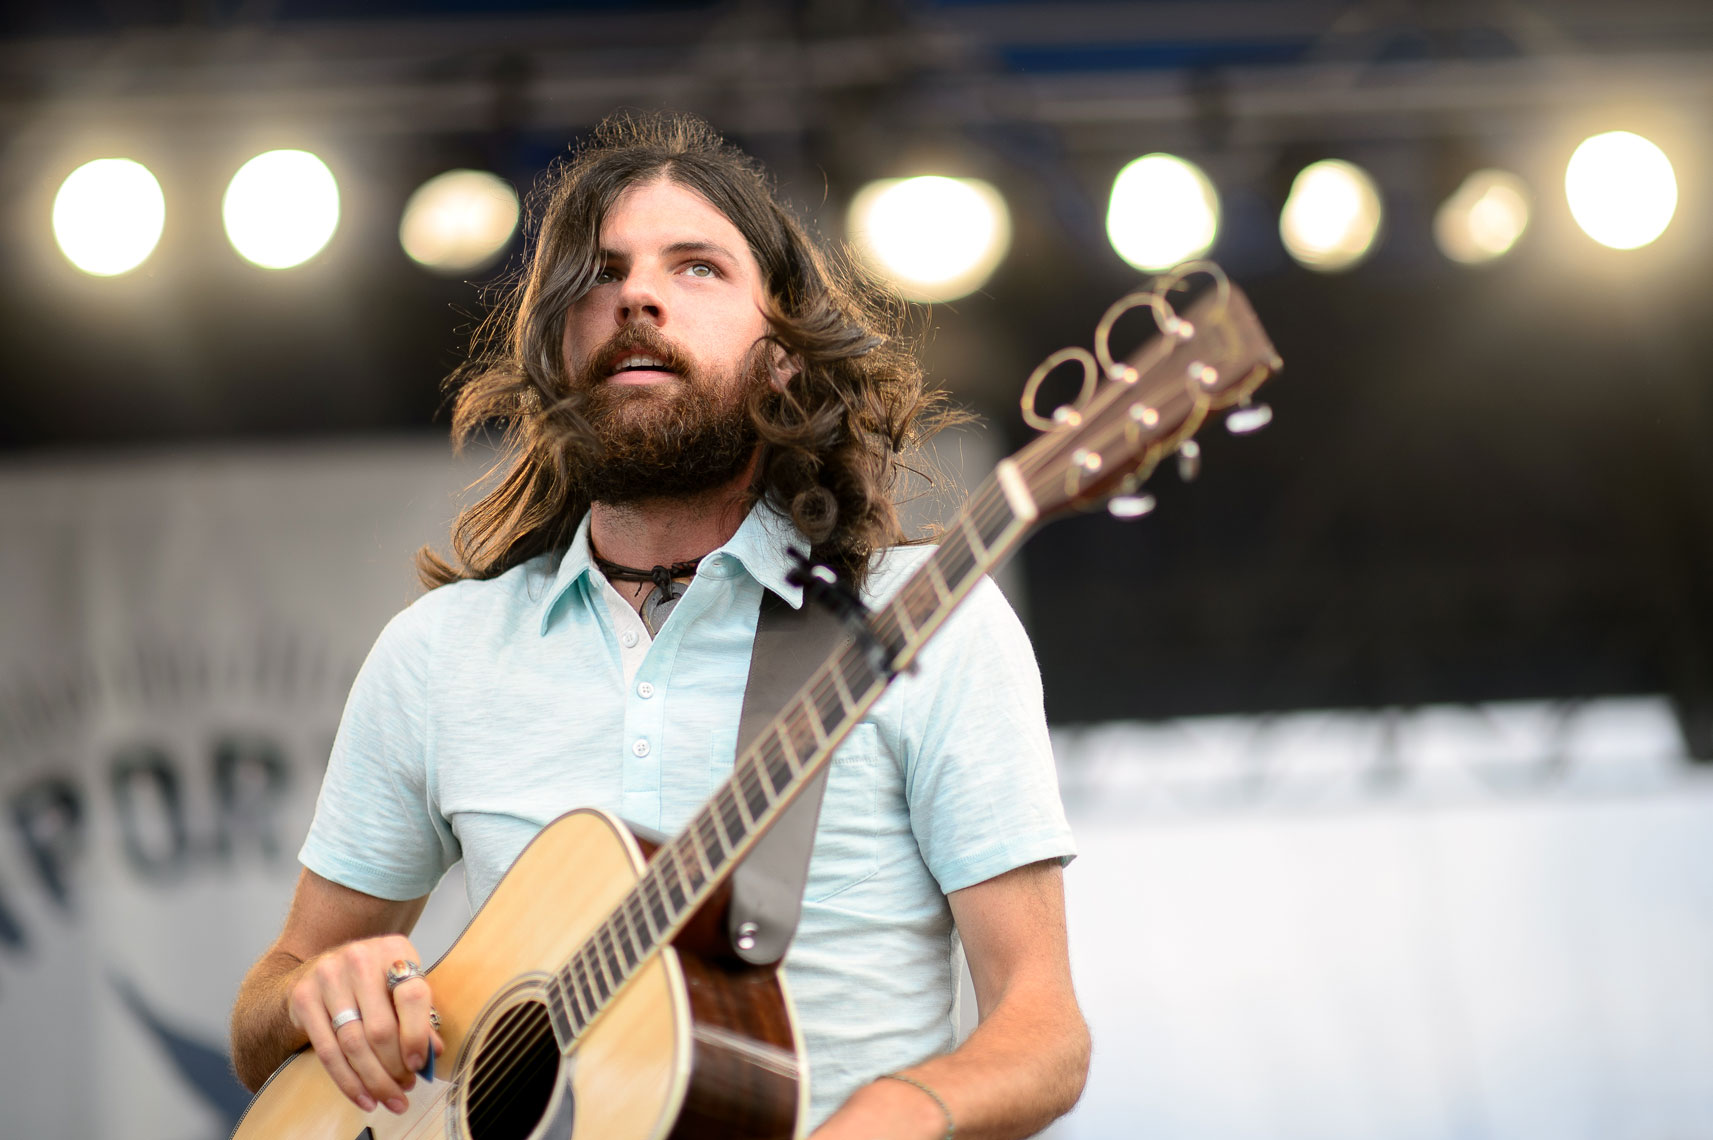 The-Avett-Brothers-performs-at-the-2013-Newport-Folk-Festival